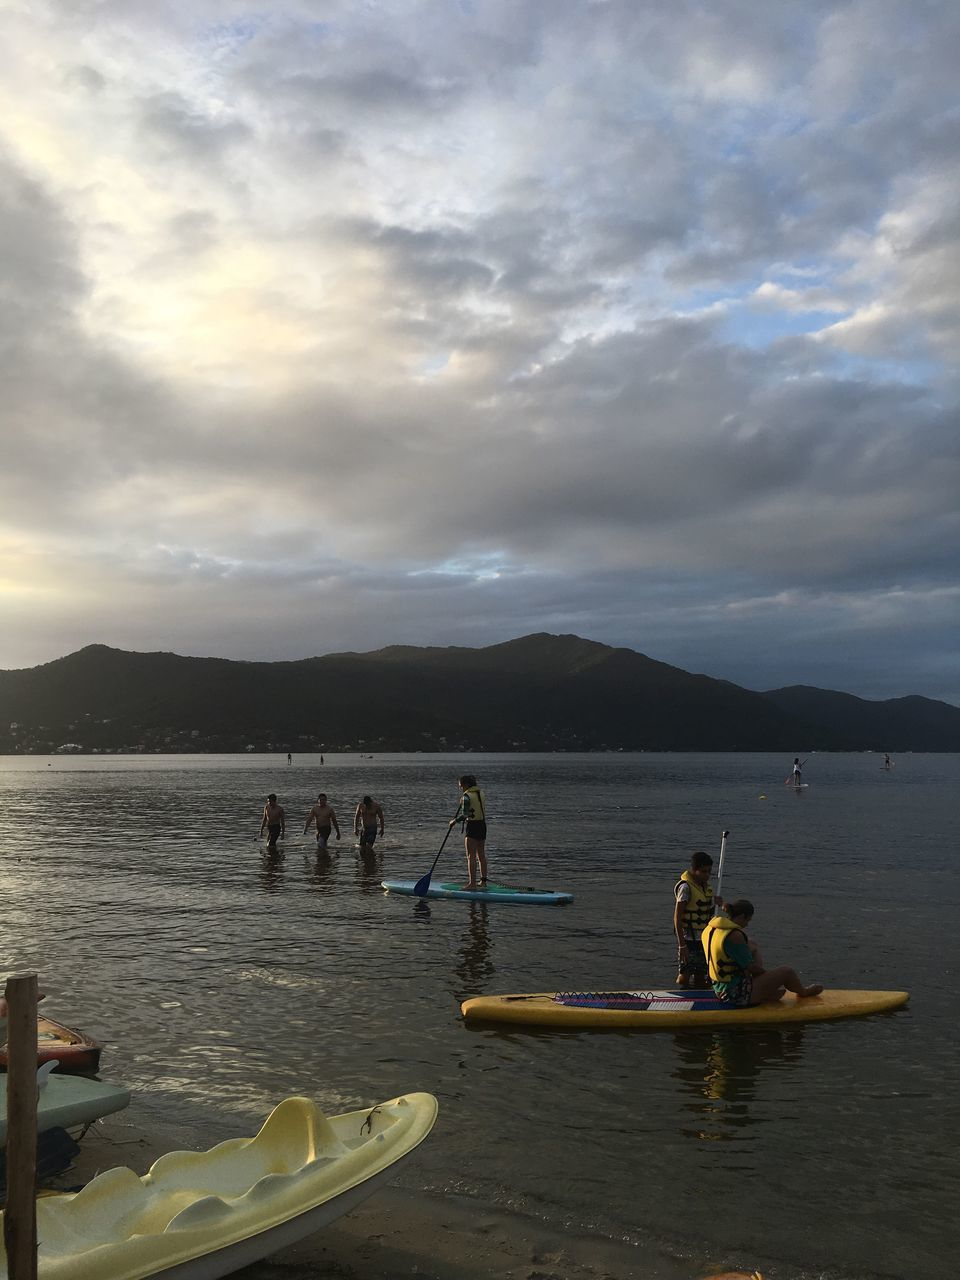 sky, cloud - sky, real people, water, nature, nautical vessel, outdoors, oar, mountain, leisure activity, teamwork, sport, togetherness, transportation, day, men, scenics, lifestyles, beauty in nature, people, adult